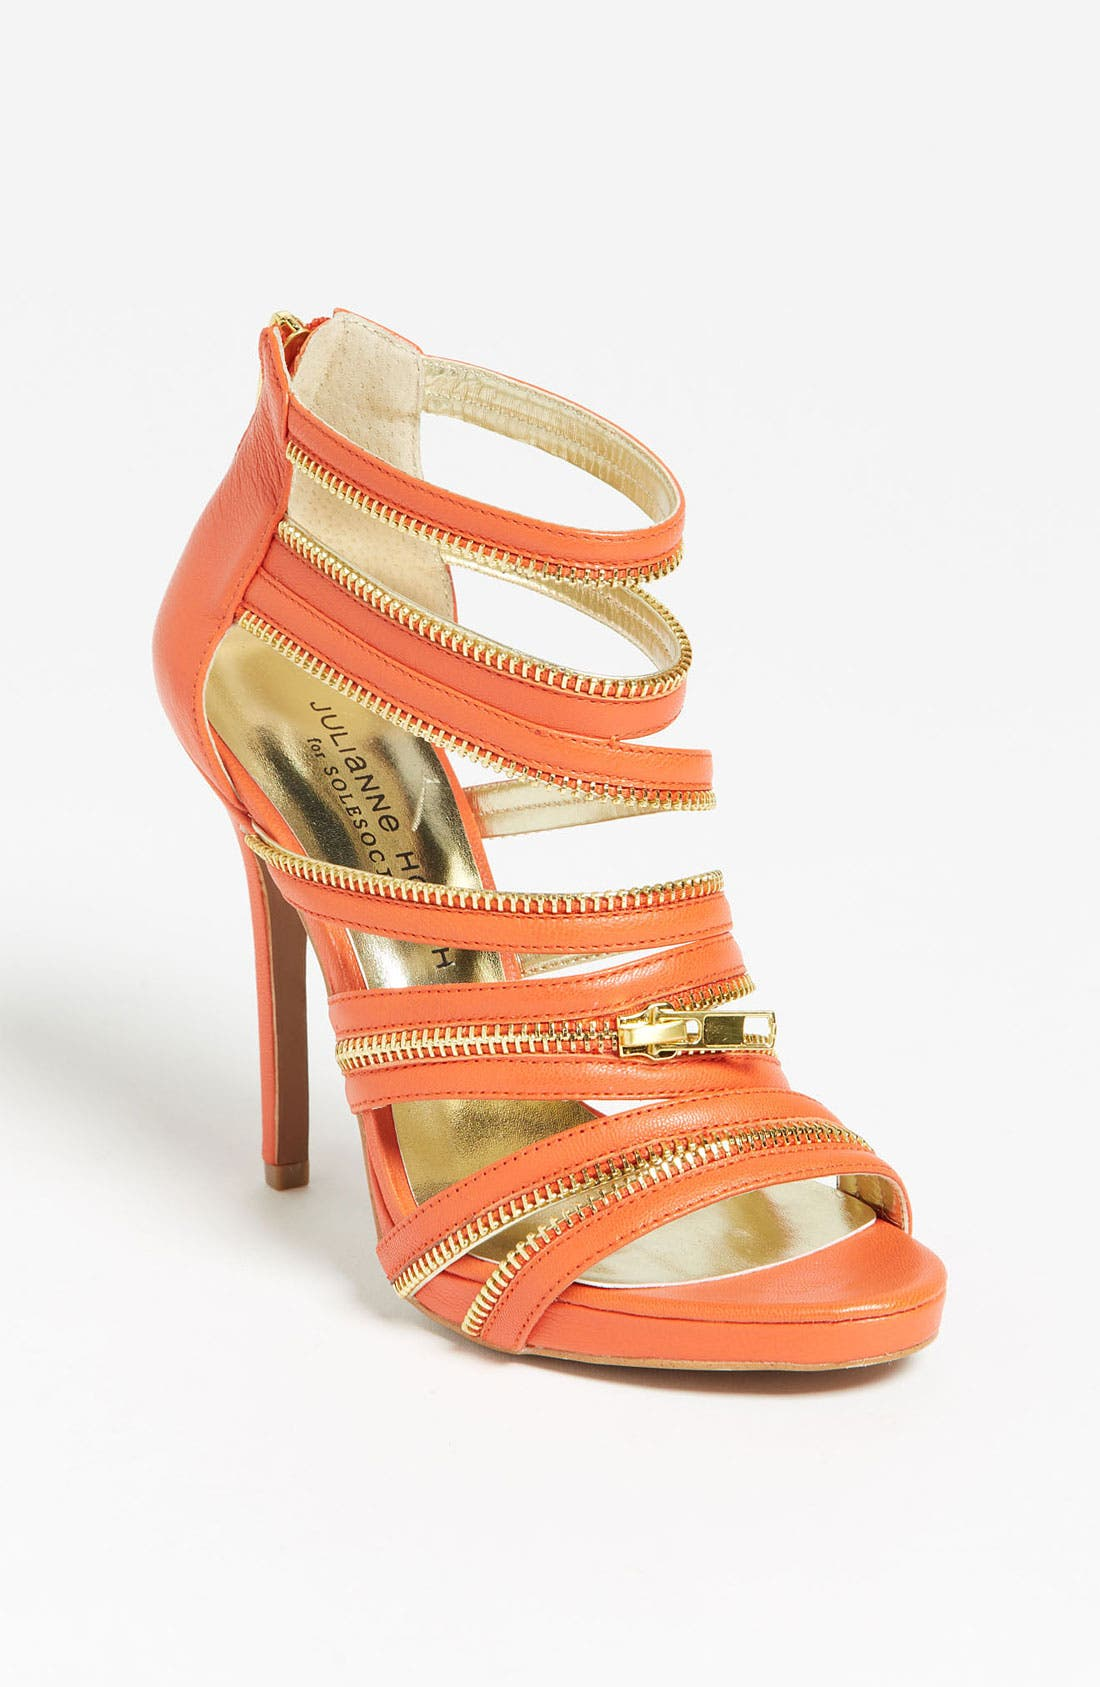 Main Image - Julianne Hough for Sole Society 'Makenna' Sandal